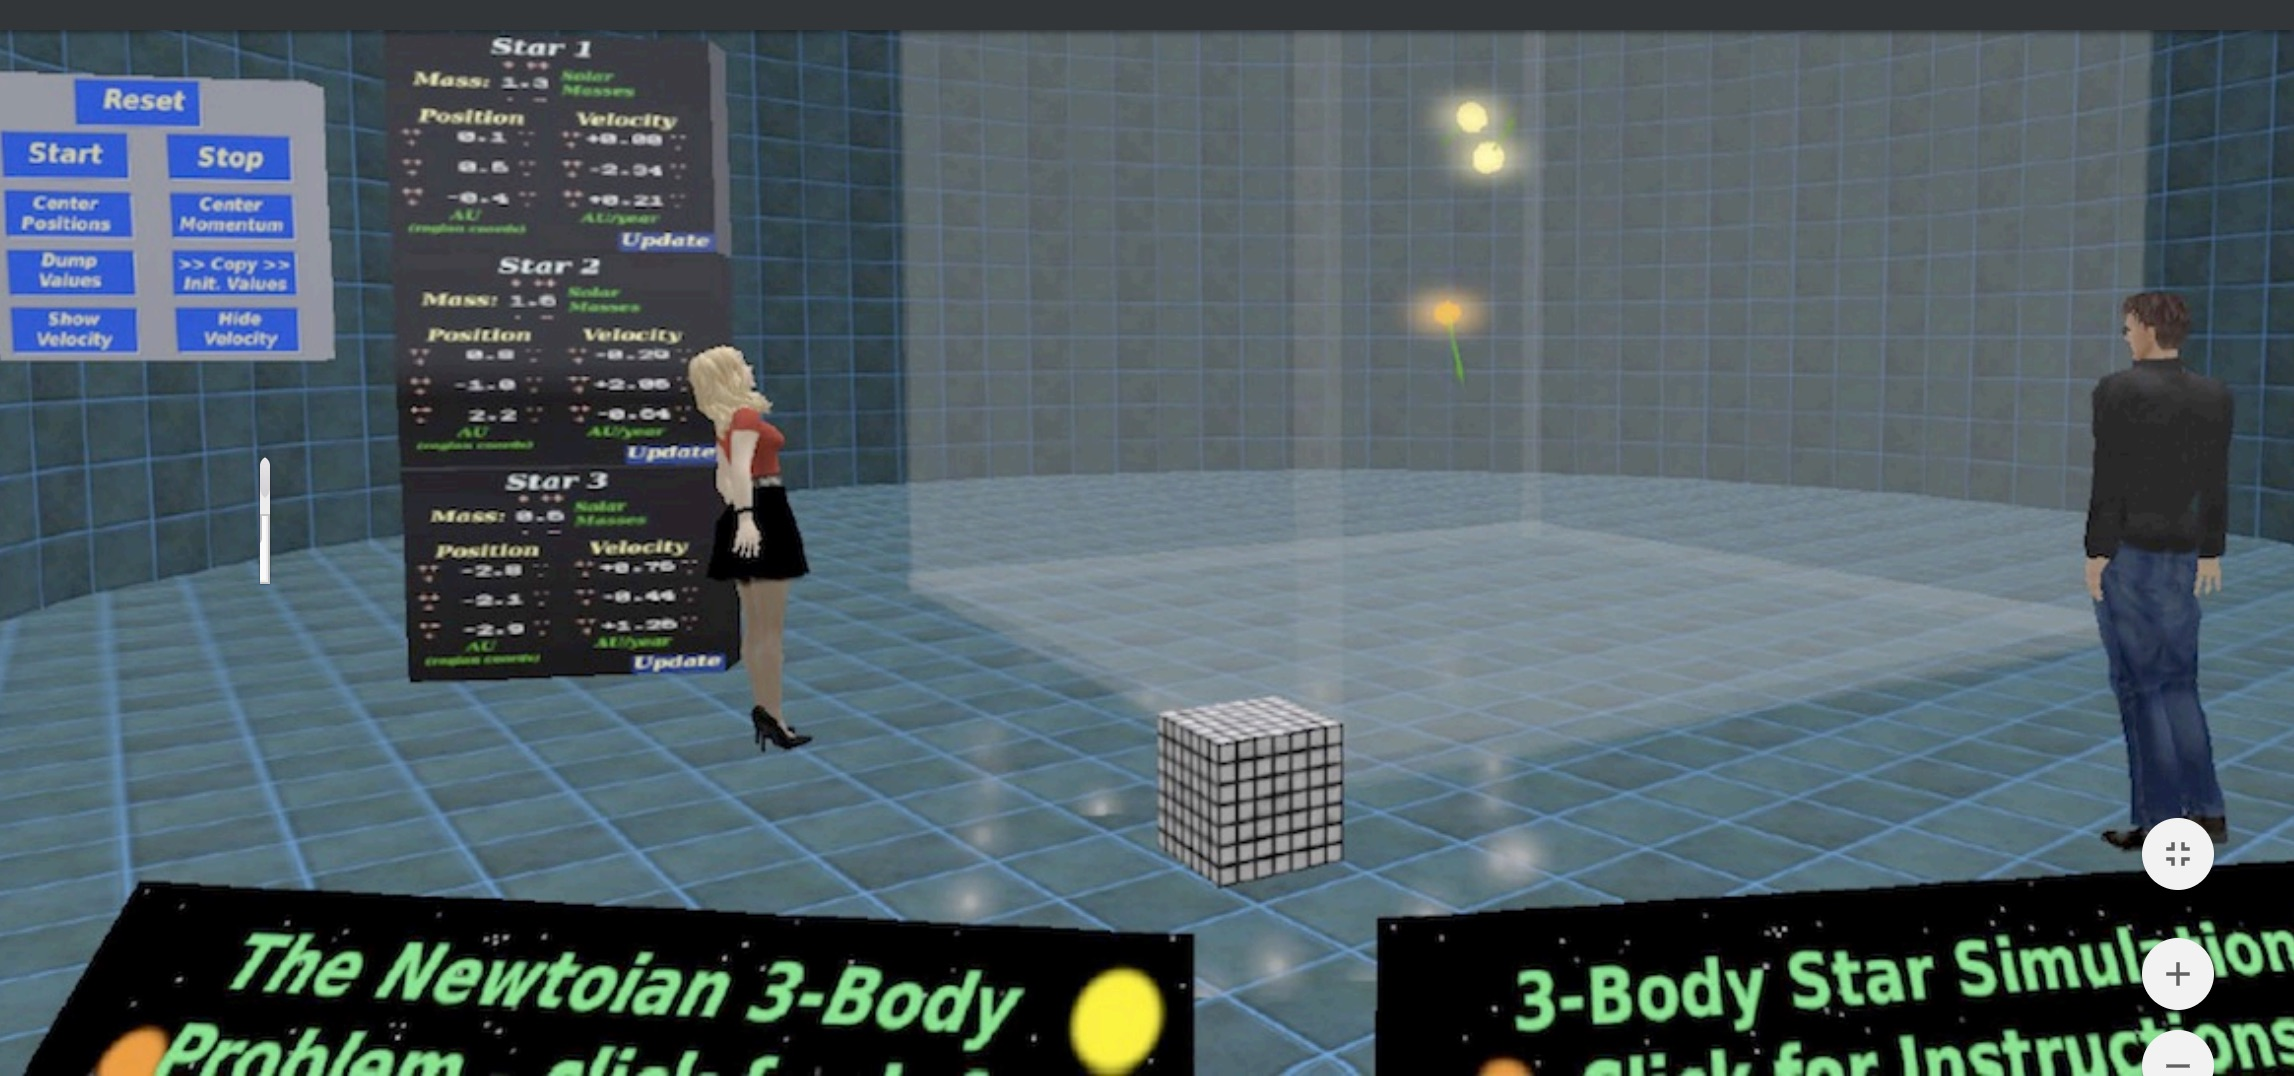 Open-Sim as a lab: the gravitational 3-body problem demonstrated